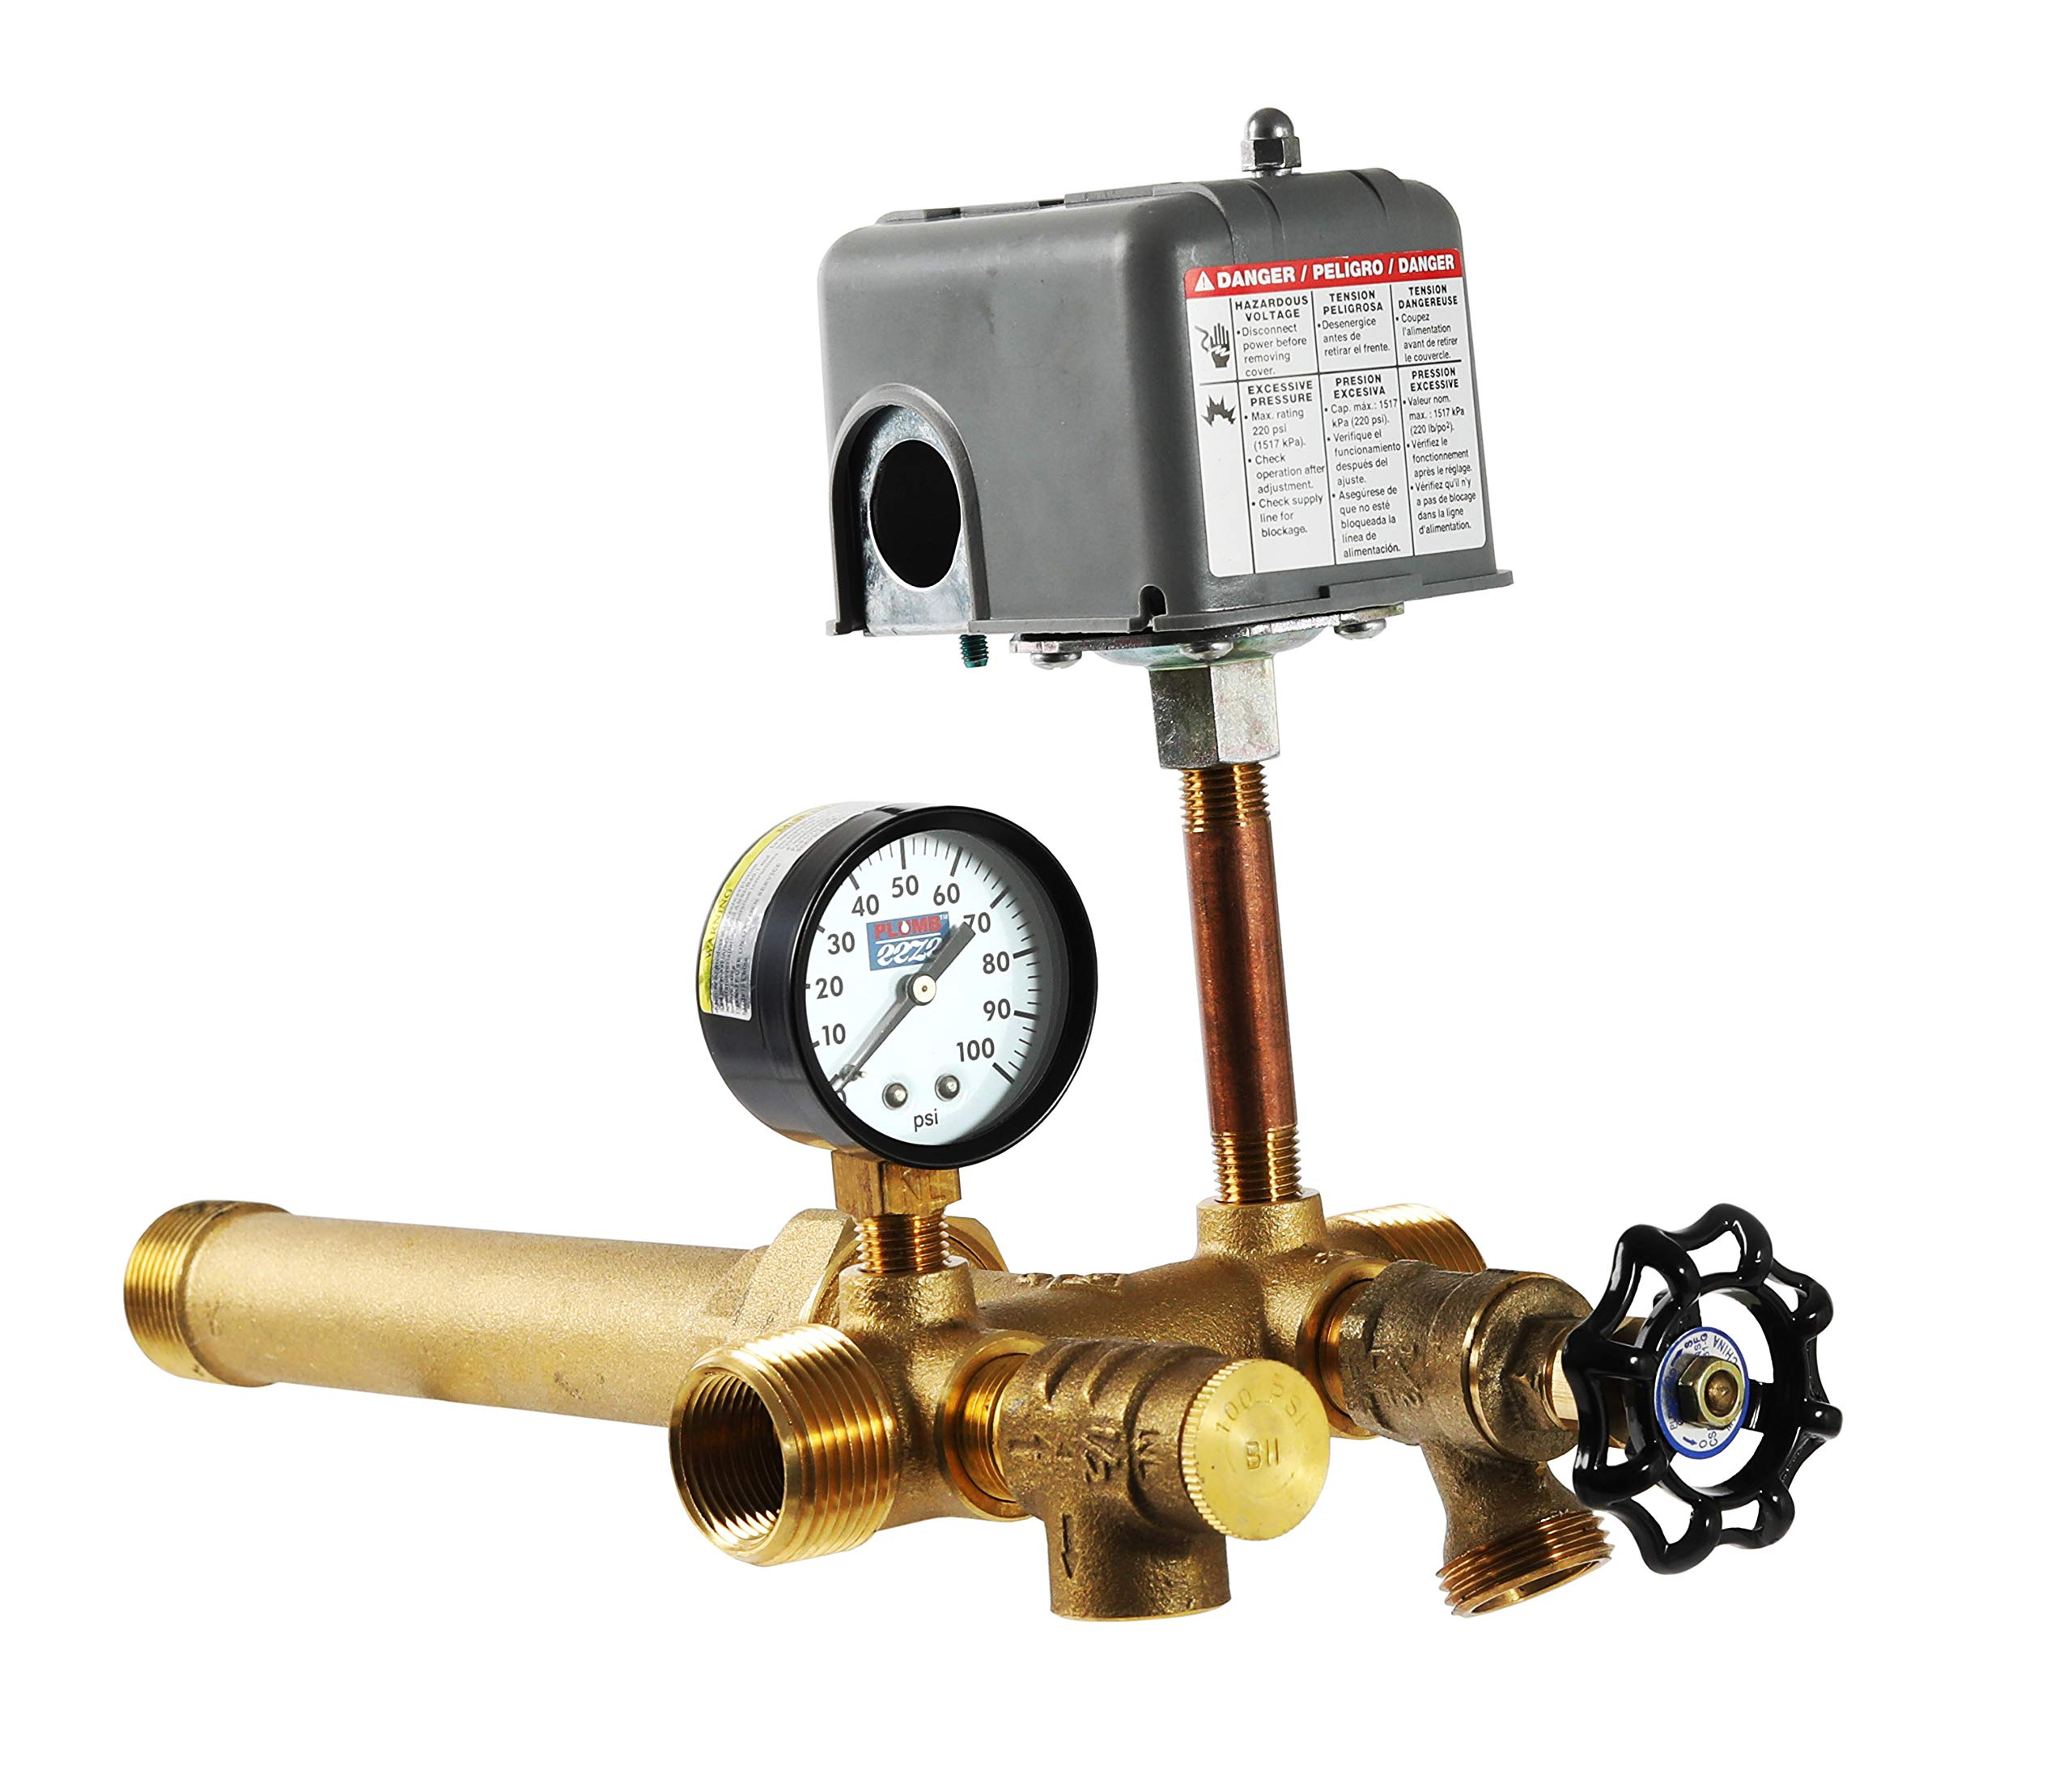 Plumb eeze Pressure Tank Installation Kit with 1'' Brass Union tank tee to fit most pressure tanks with diameters up to 16'' by PLUMB eeze